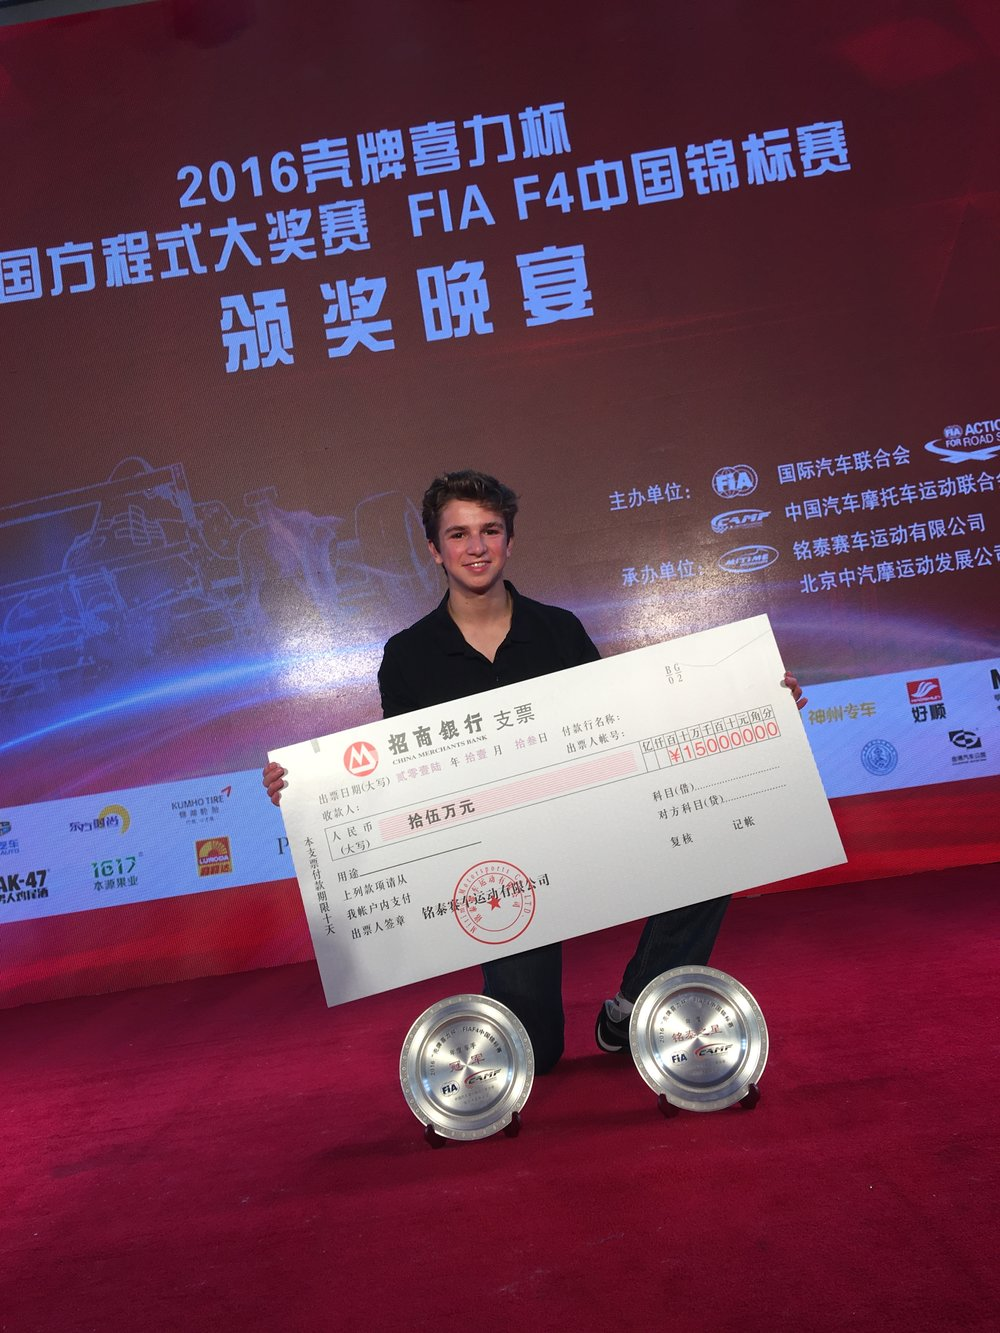 Bruno Carneiro with this two MiTime Awards: 2016 FIA F4 Chinese Champion and MiTime Future Star Award